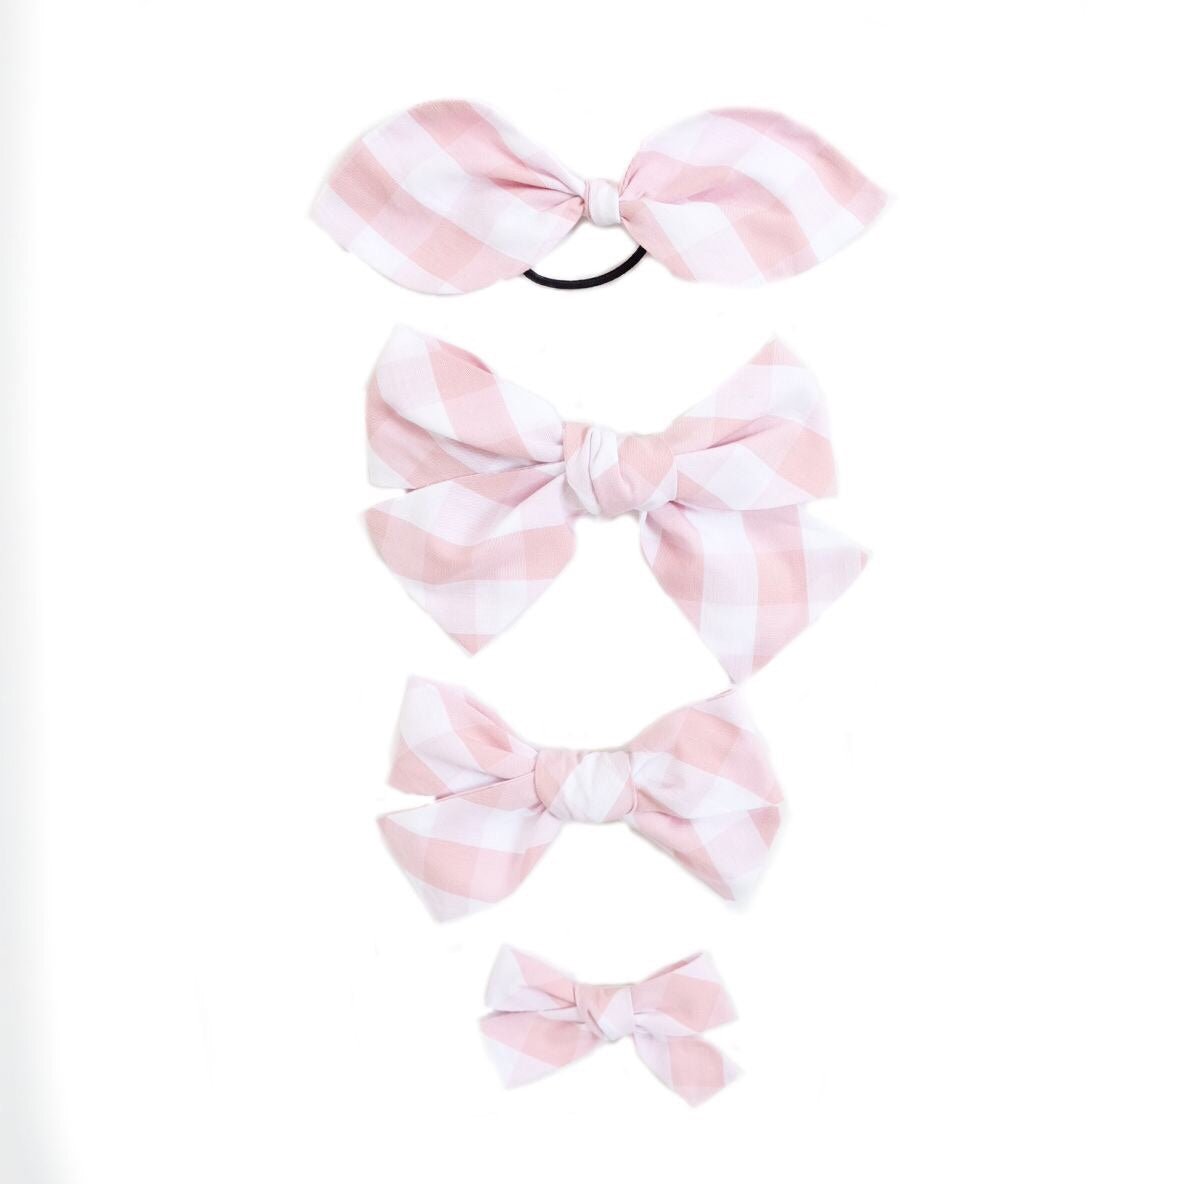 Handtied Hairbows Cheery Cherry Check